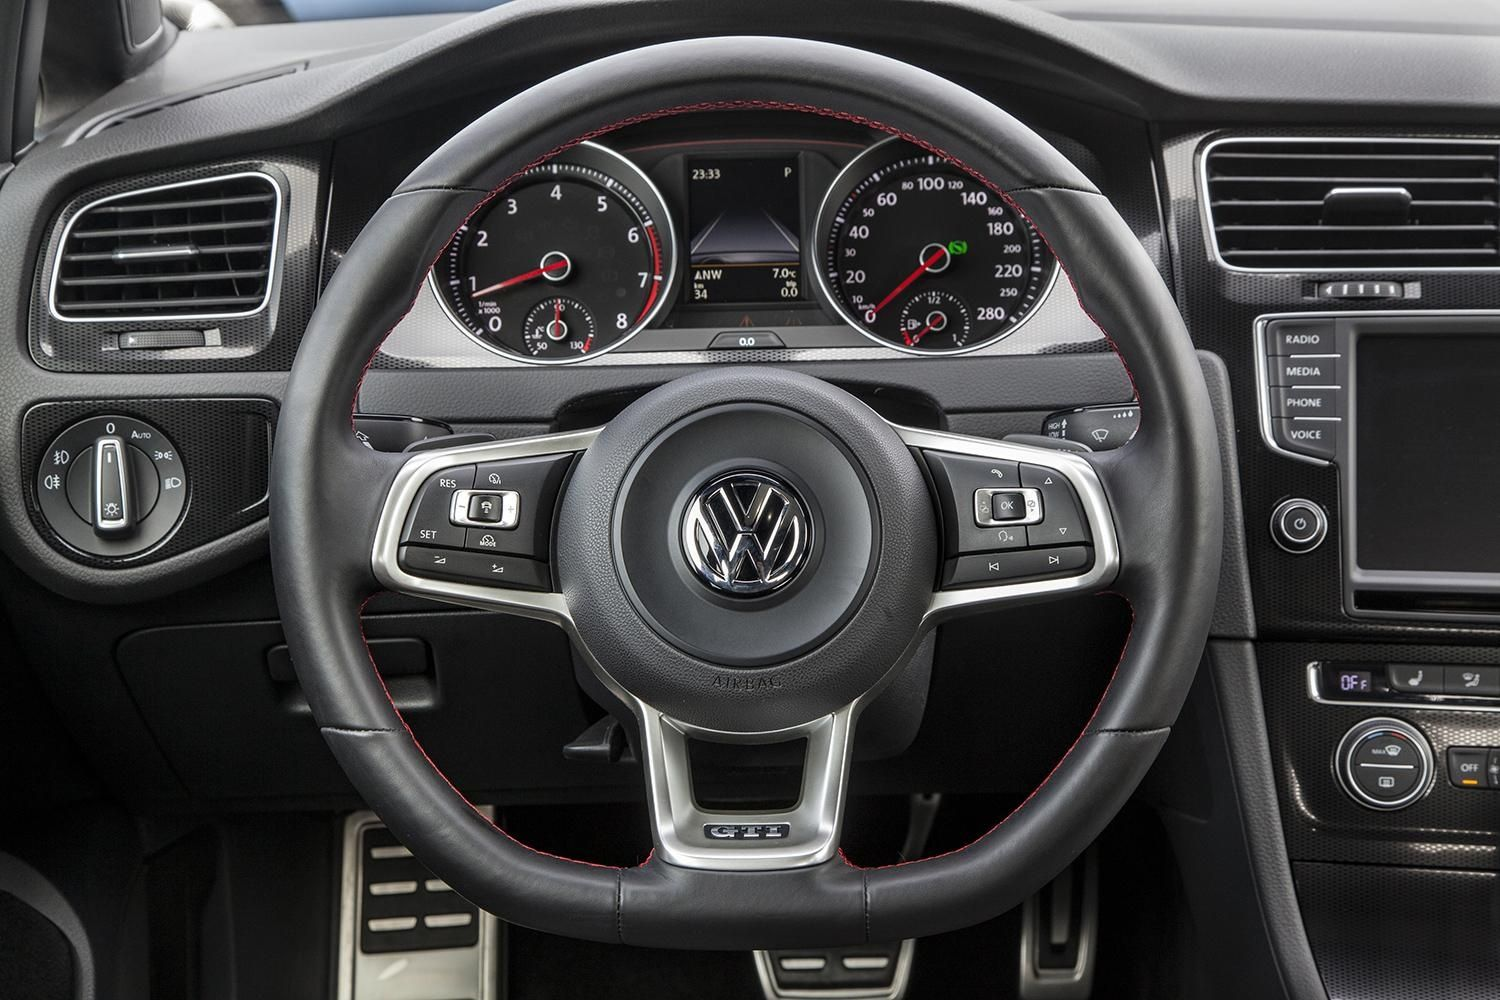 First Drive 2015 Volkswagen Golf Gti Digital Trends Volkswagen Golf Gti Golf Gti Gti